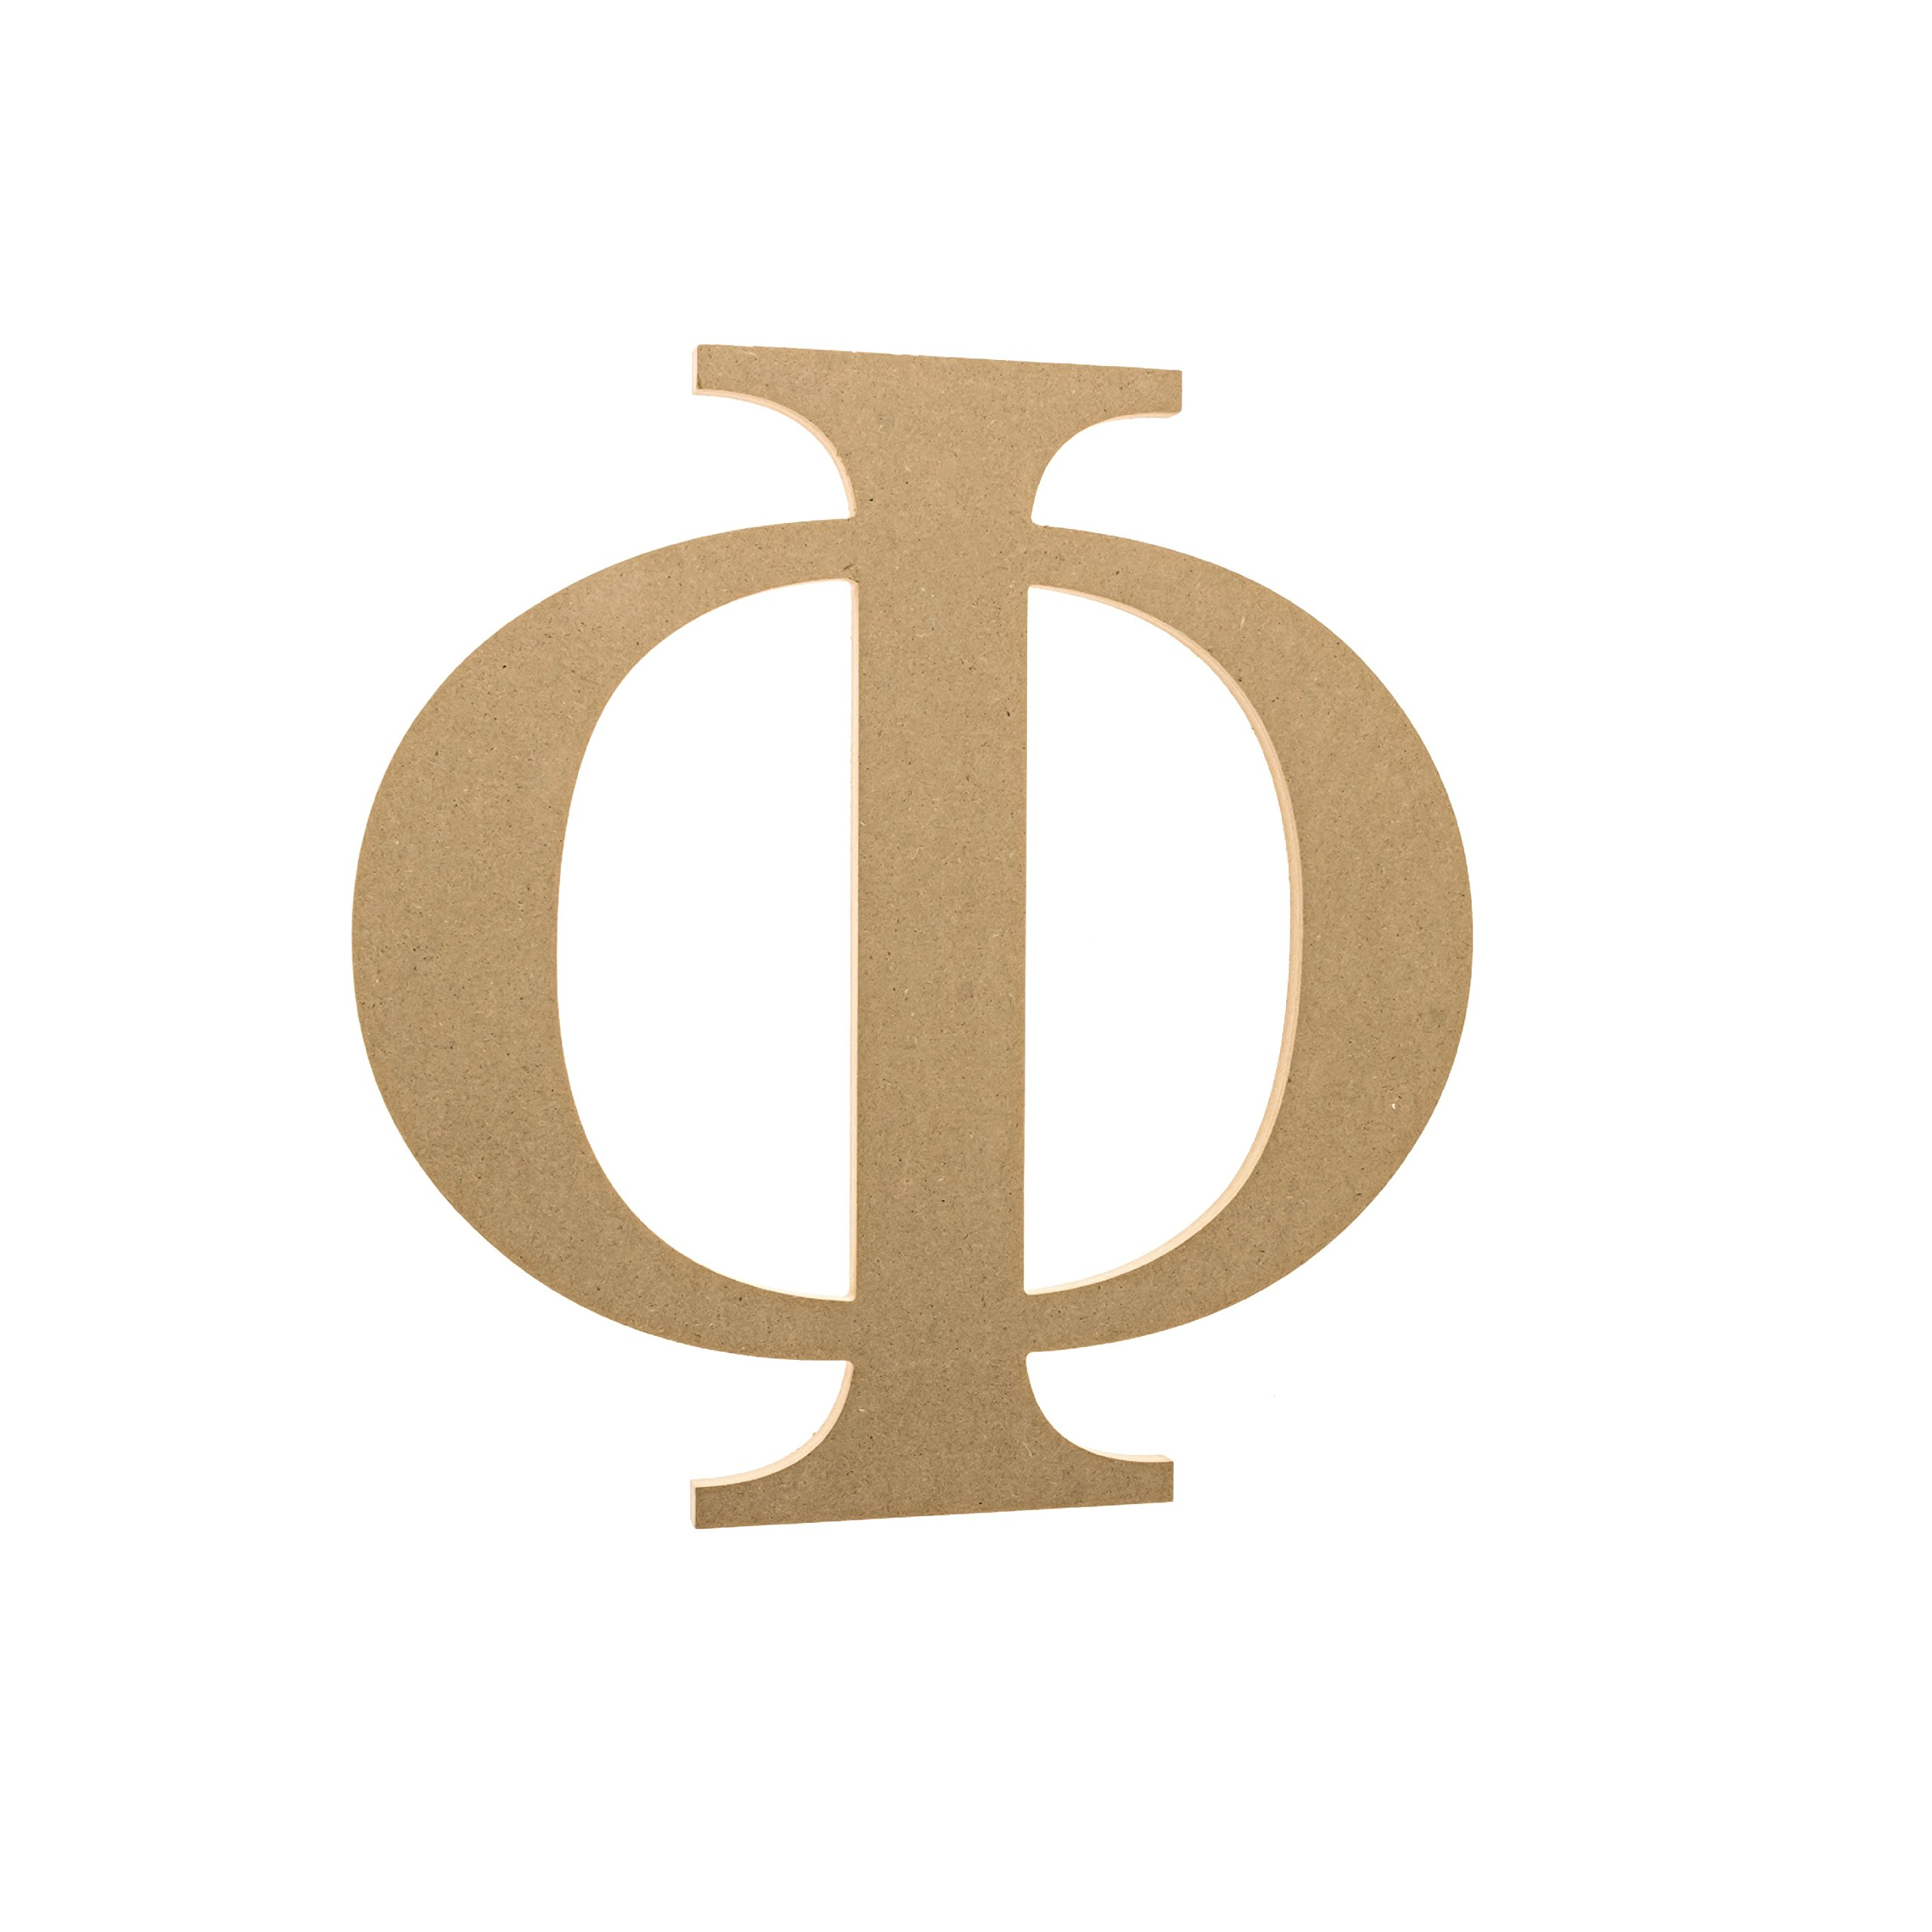 Cheap Large Mdf Letters Find Large Mdf Letters Deals On Line At